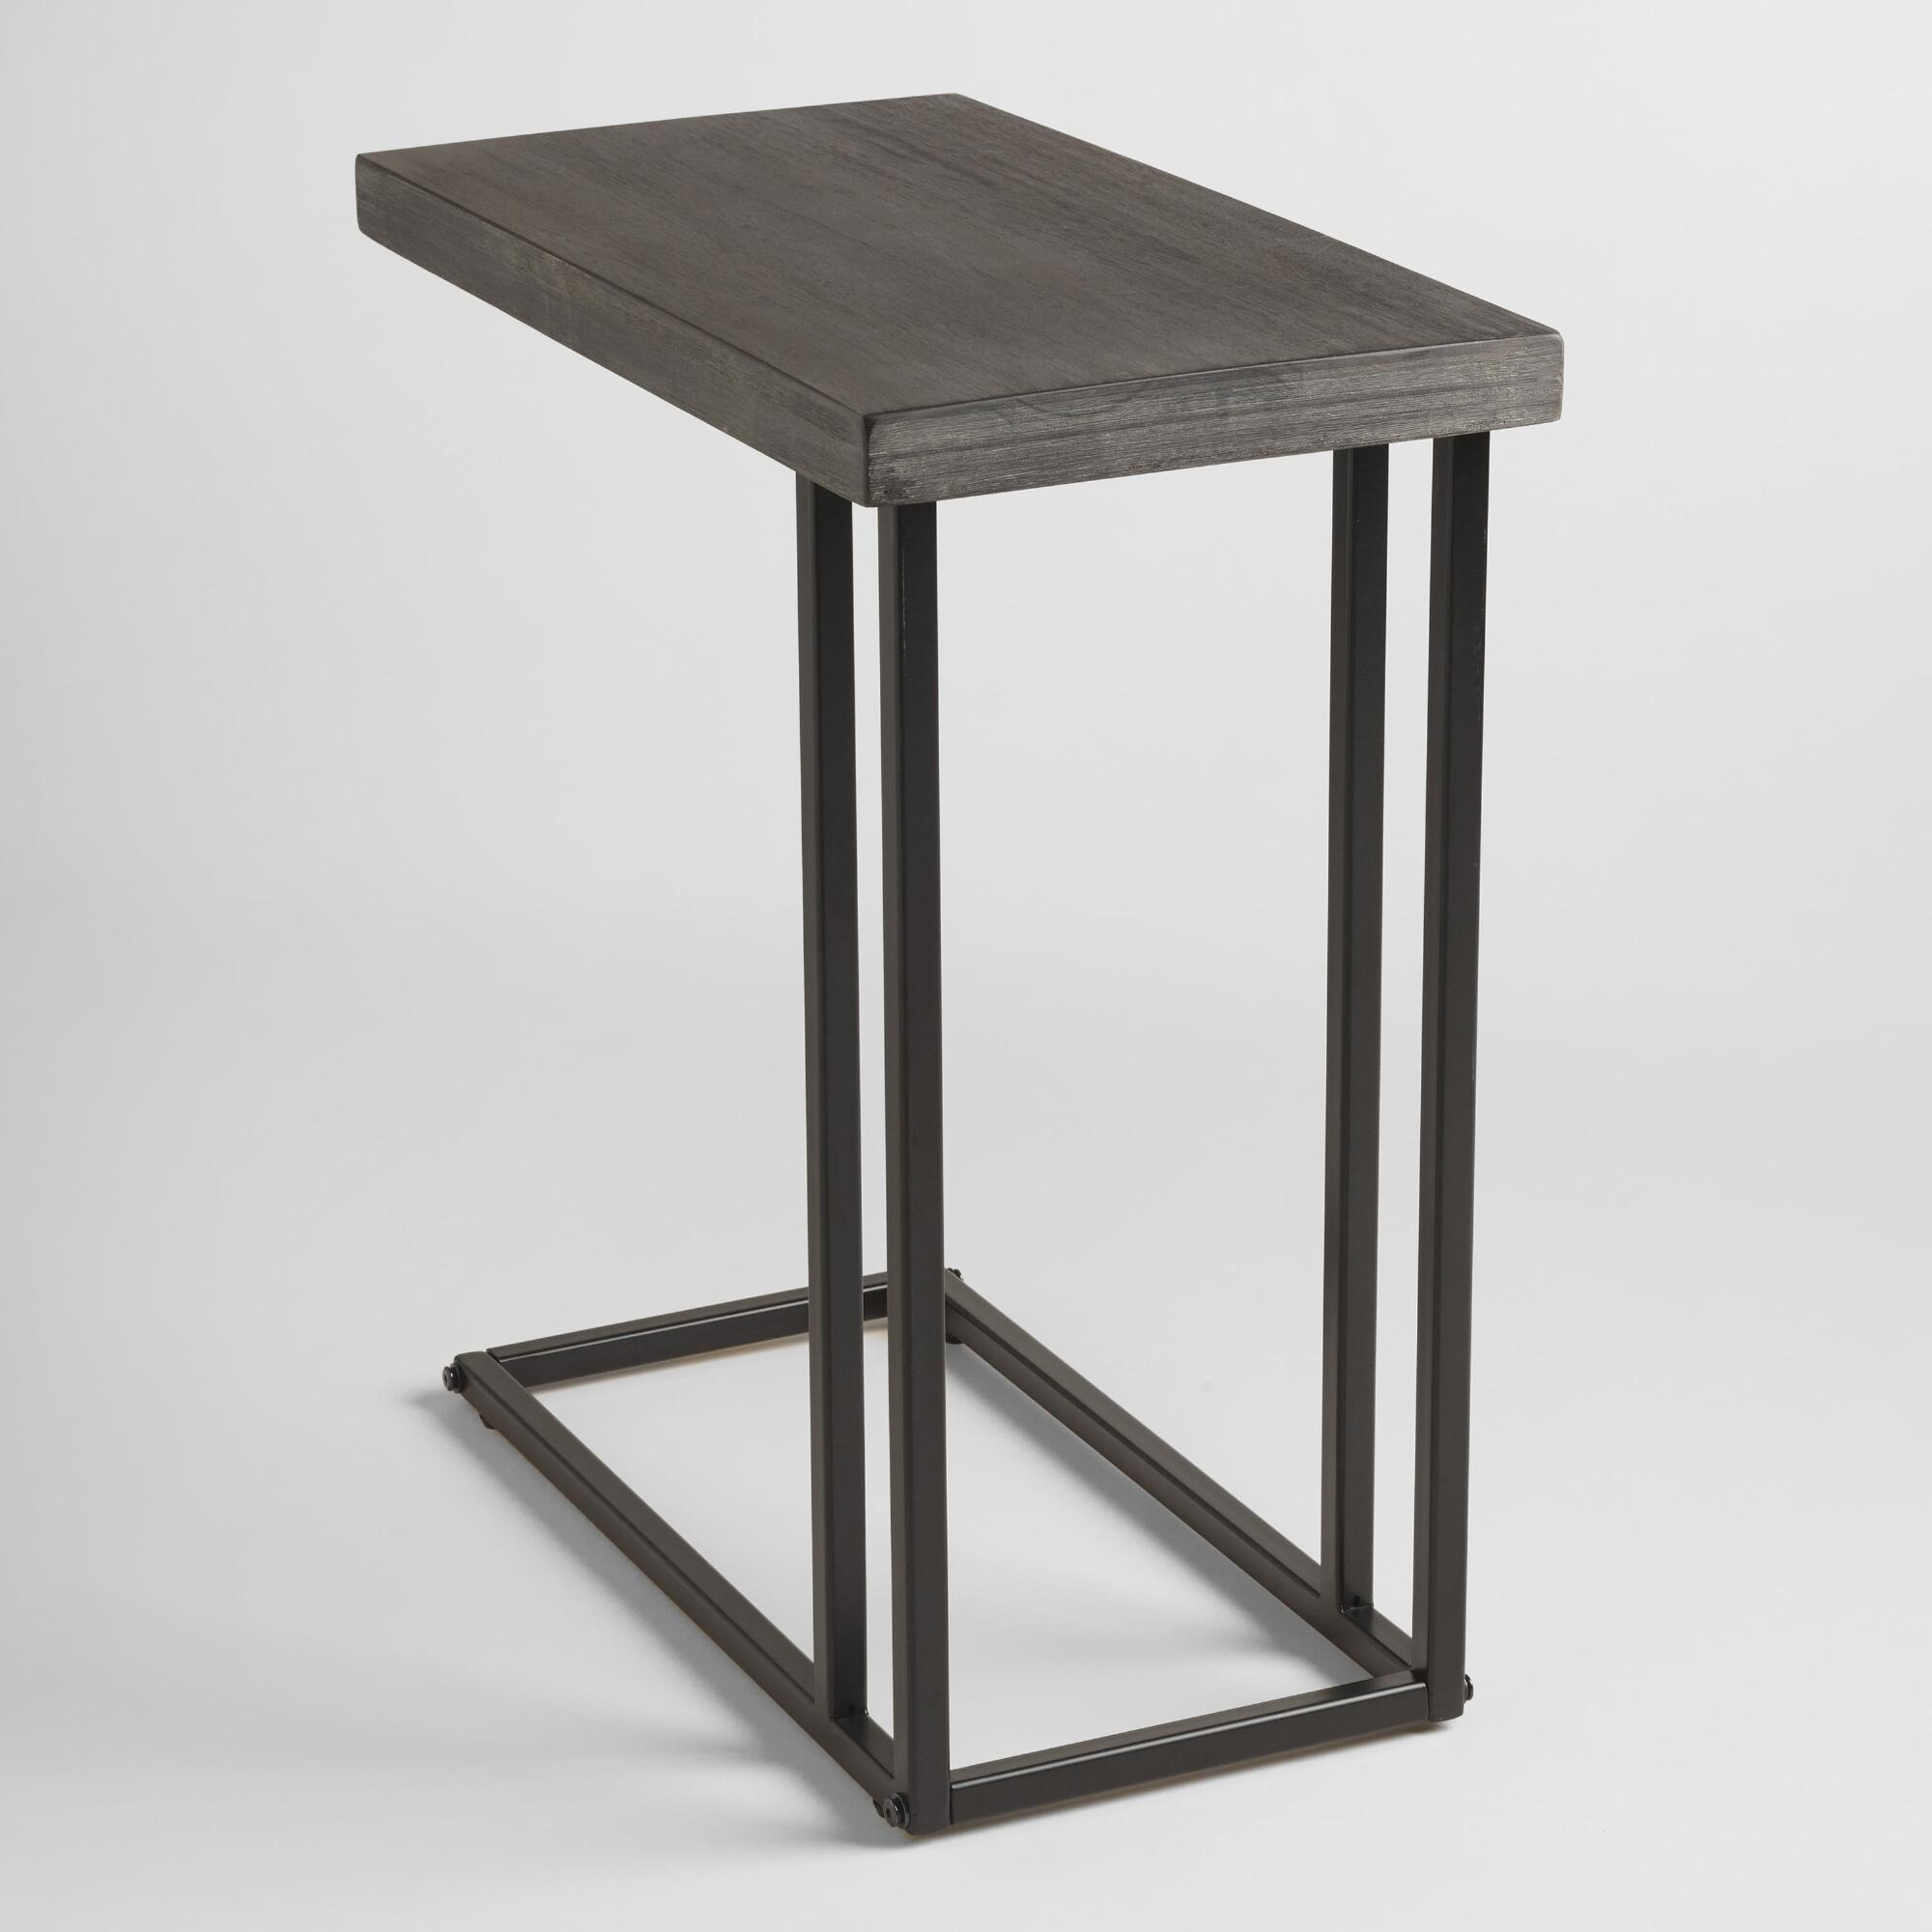 Coffee tables affordable end tables world market wood and metal kenway laptop table geotapseo Gallery